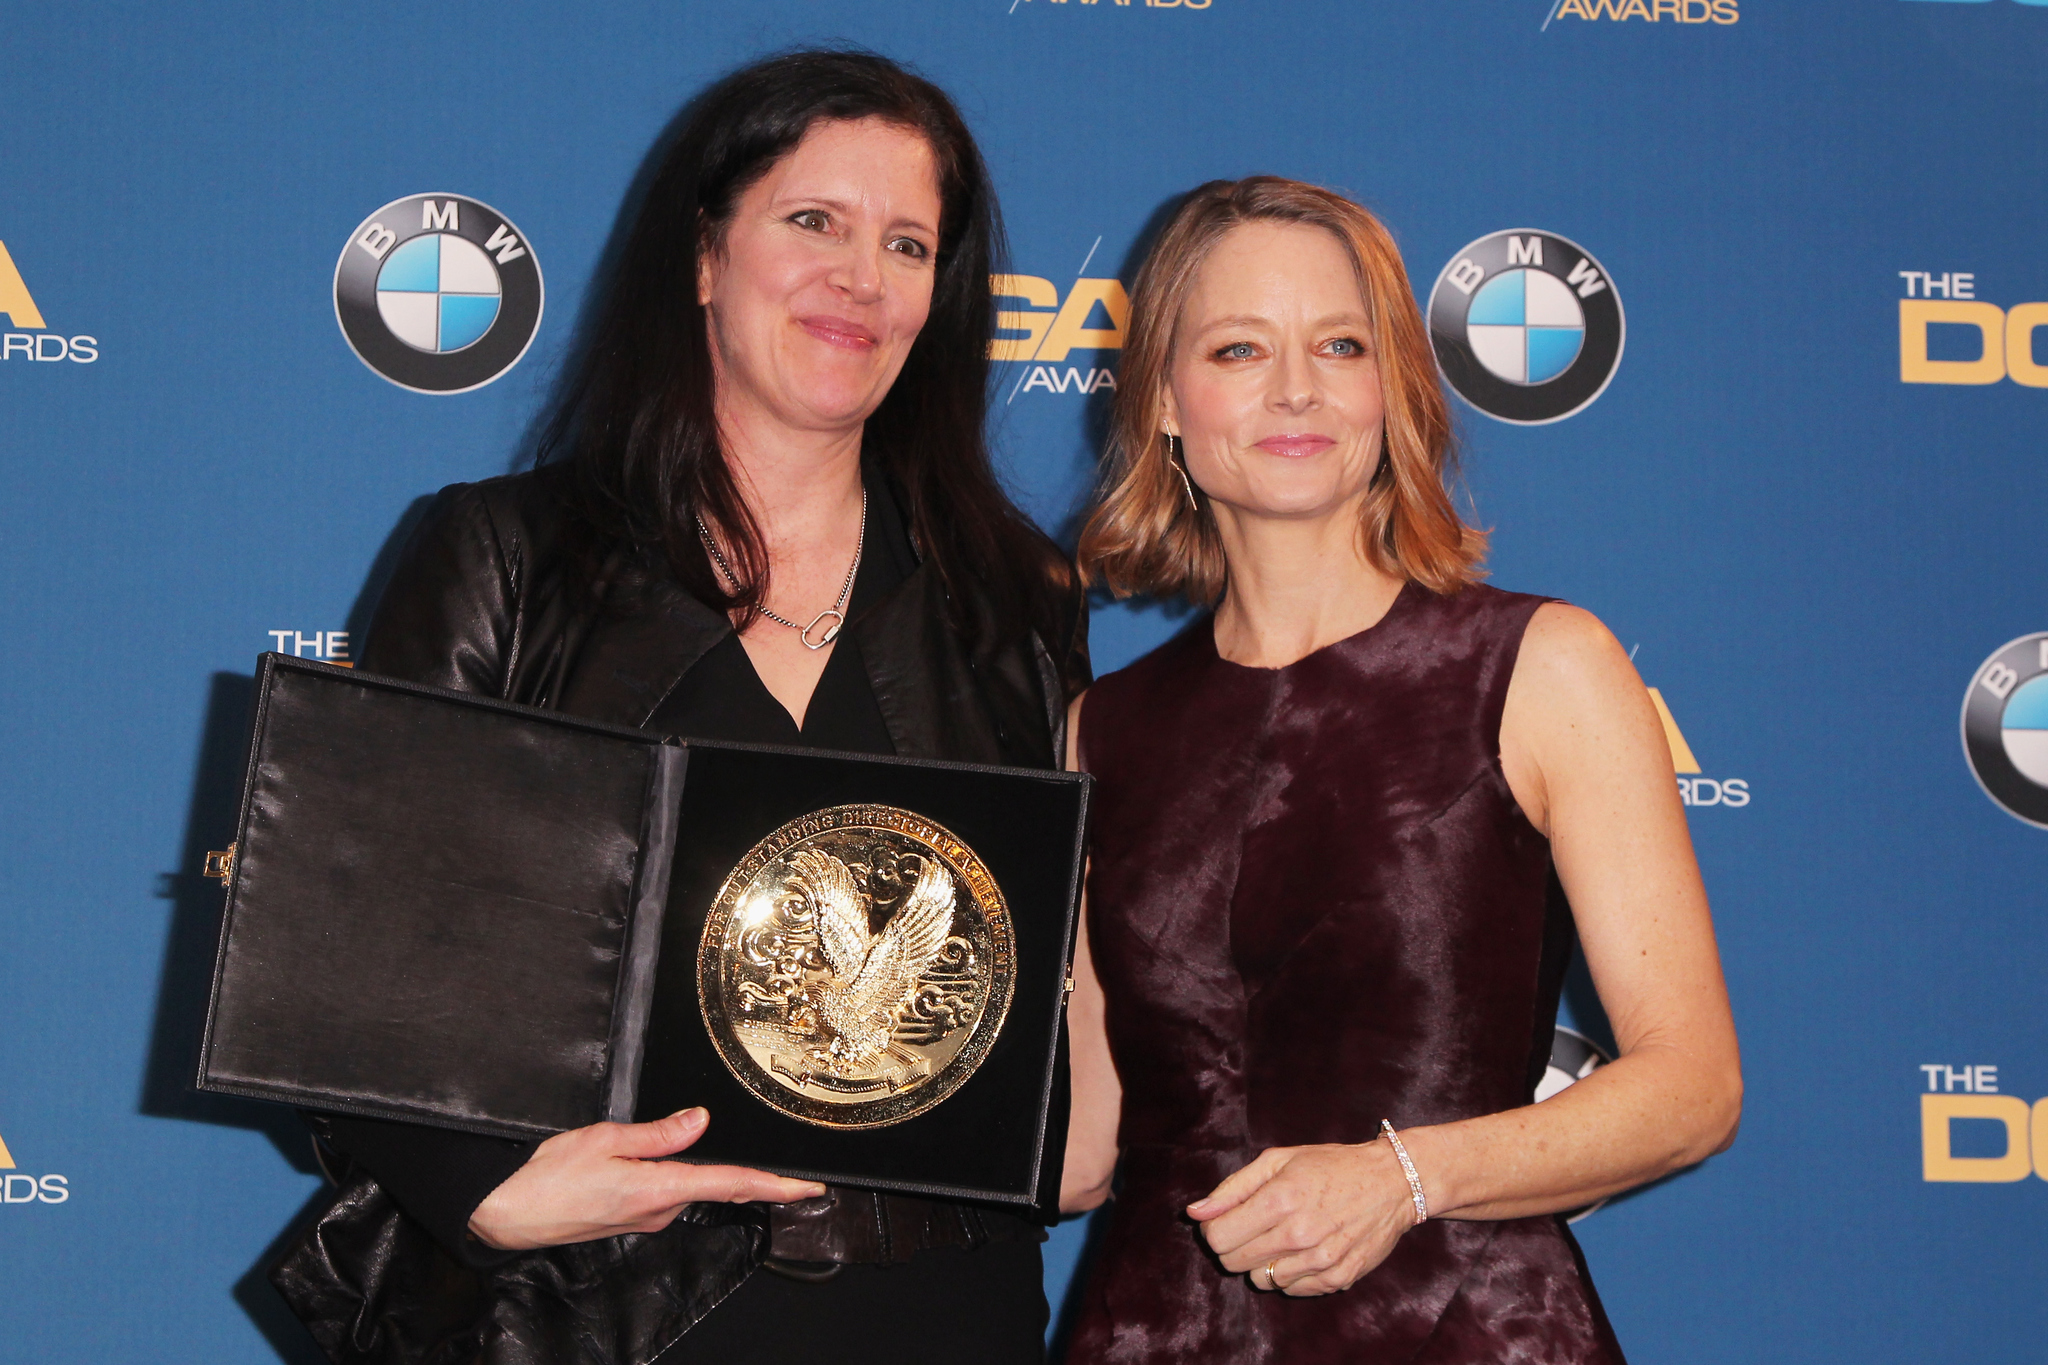 Jodie Foster and Laura Poitras at an event for Citizenfour (2014)